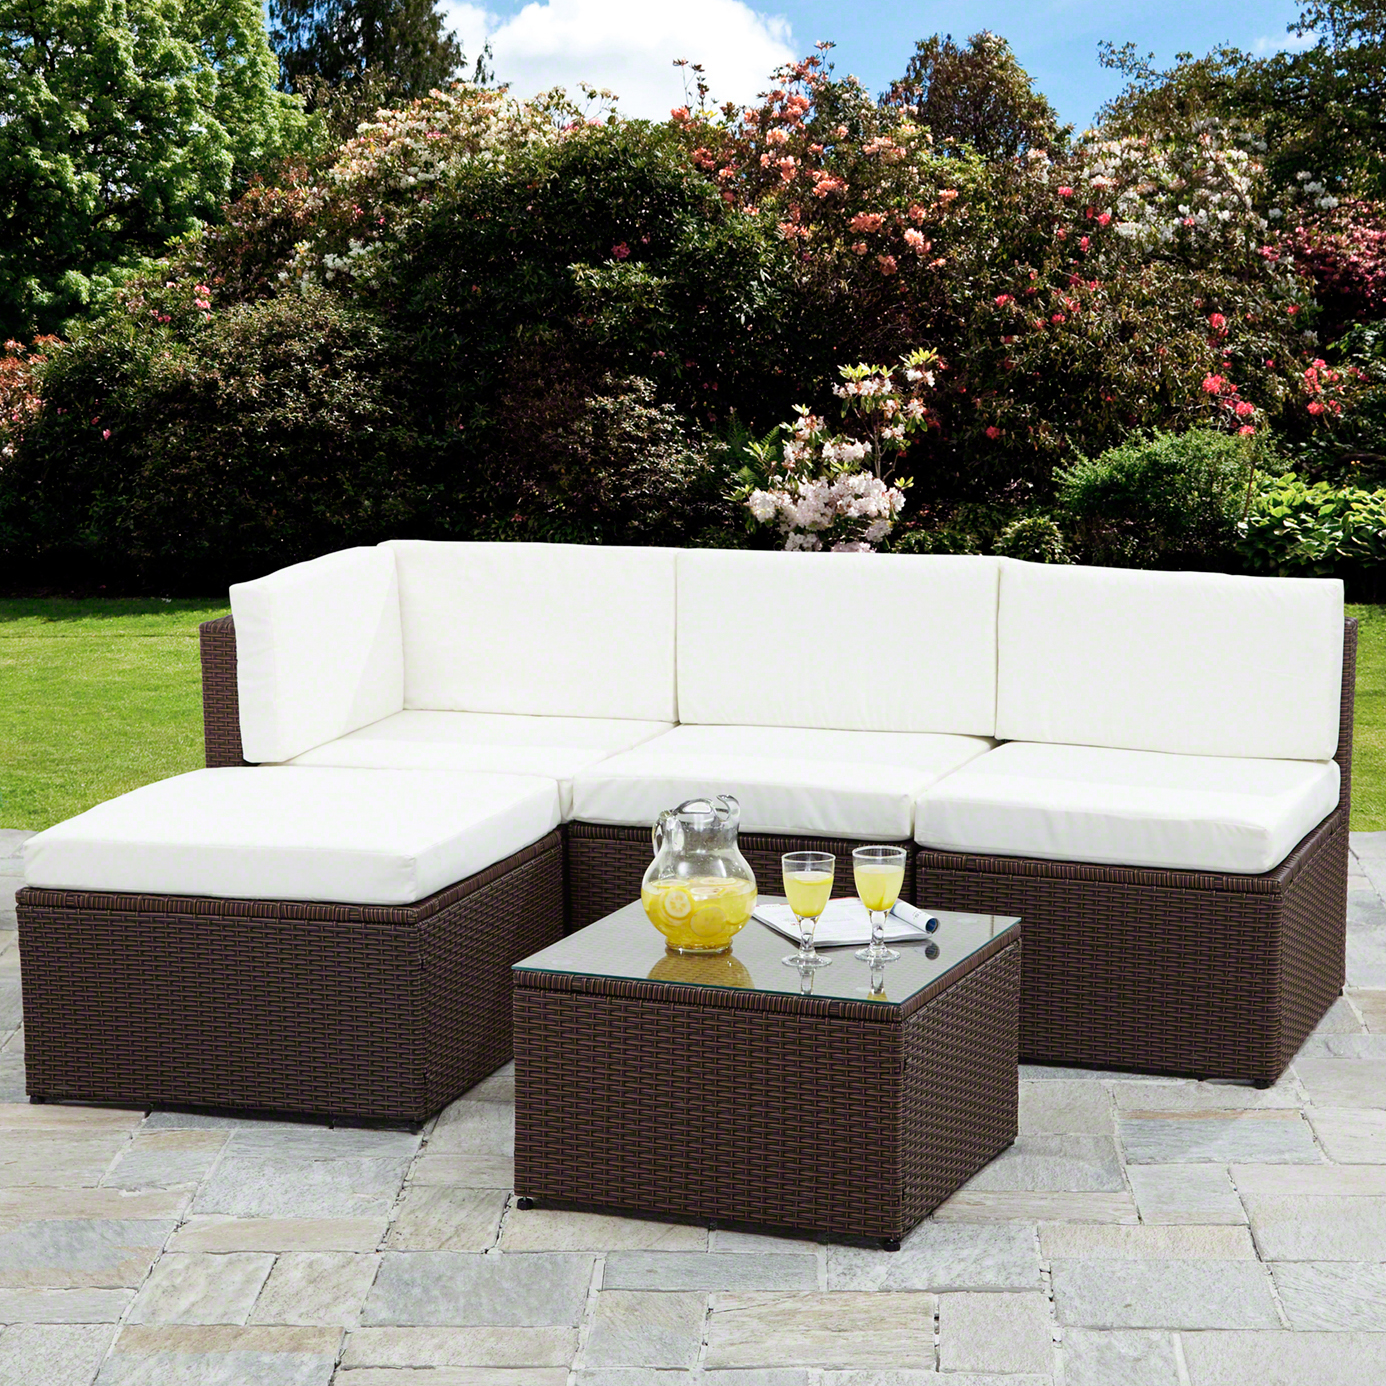 rattan corner sofa garden furniture sets in black and brown condition new uk delivery cost free brand bella life